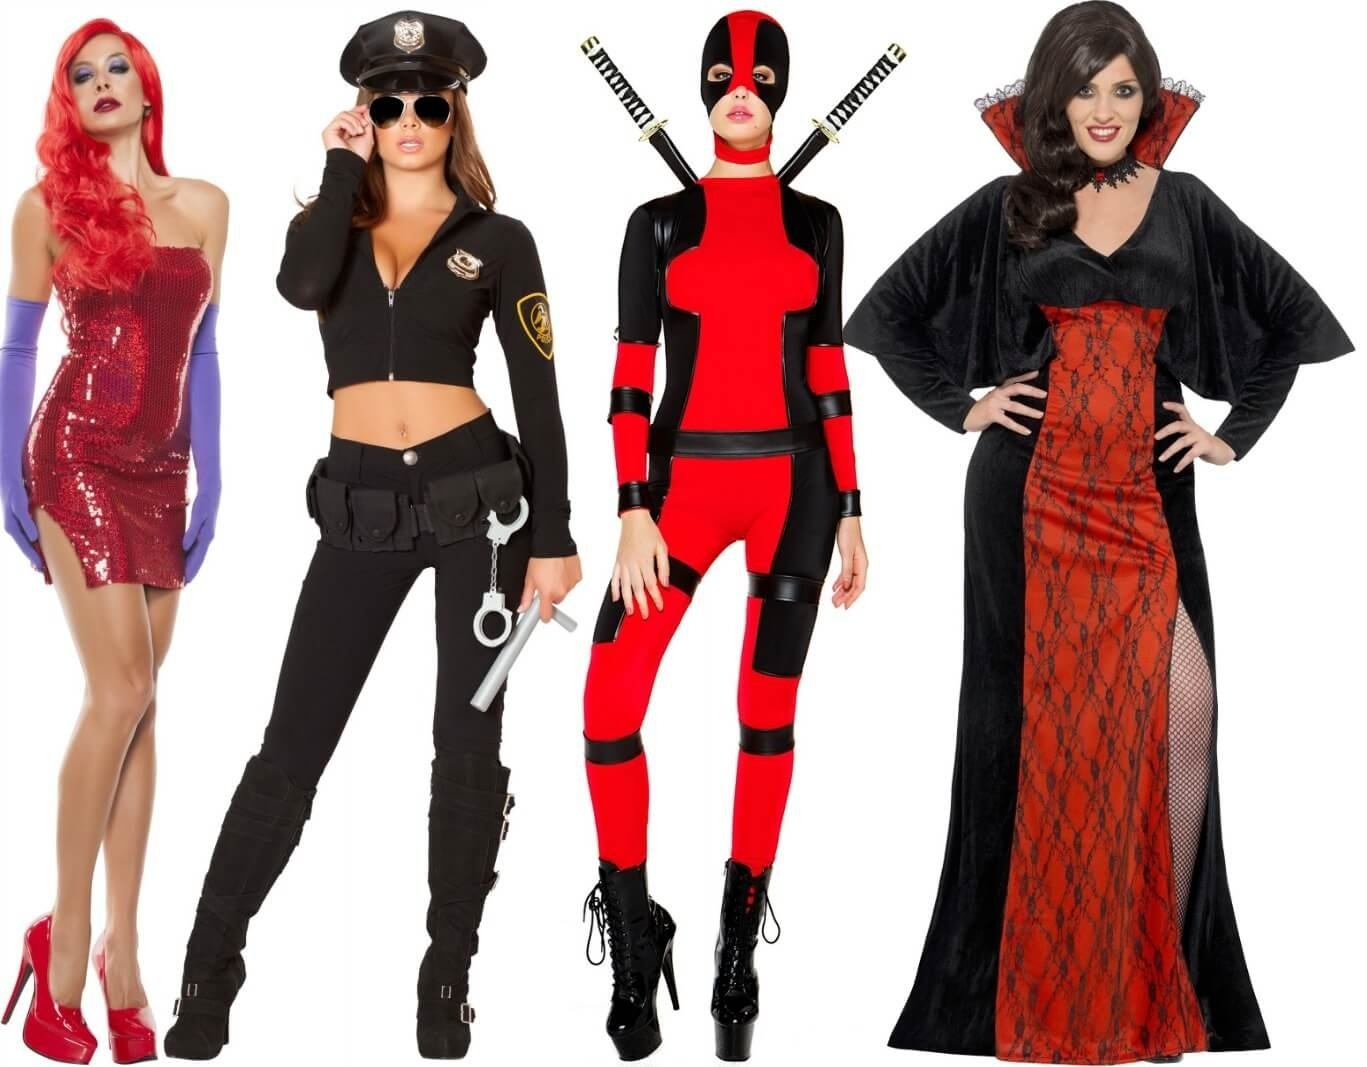 10 Awesome Cheap Costume Ideas For Women cheap halloween costume ideas halloween costumes blog 11 2021